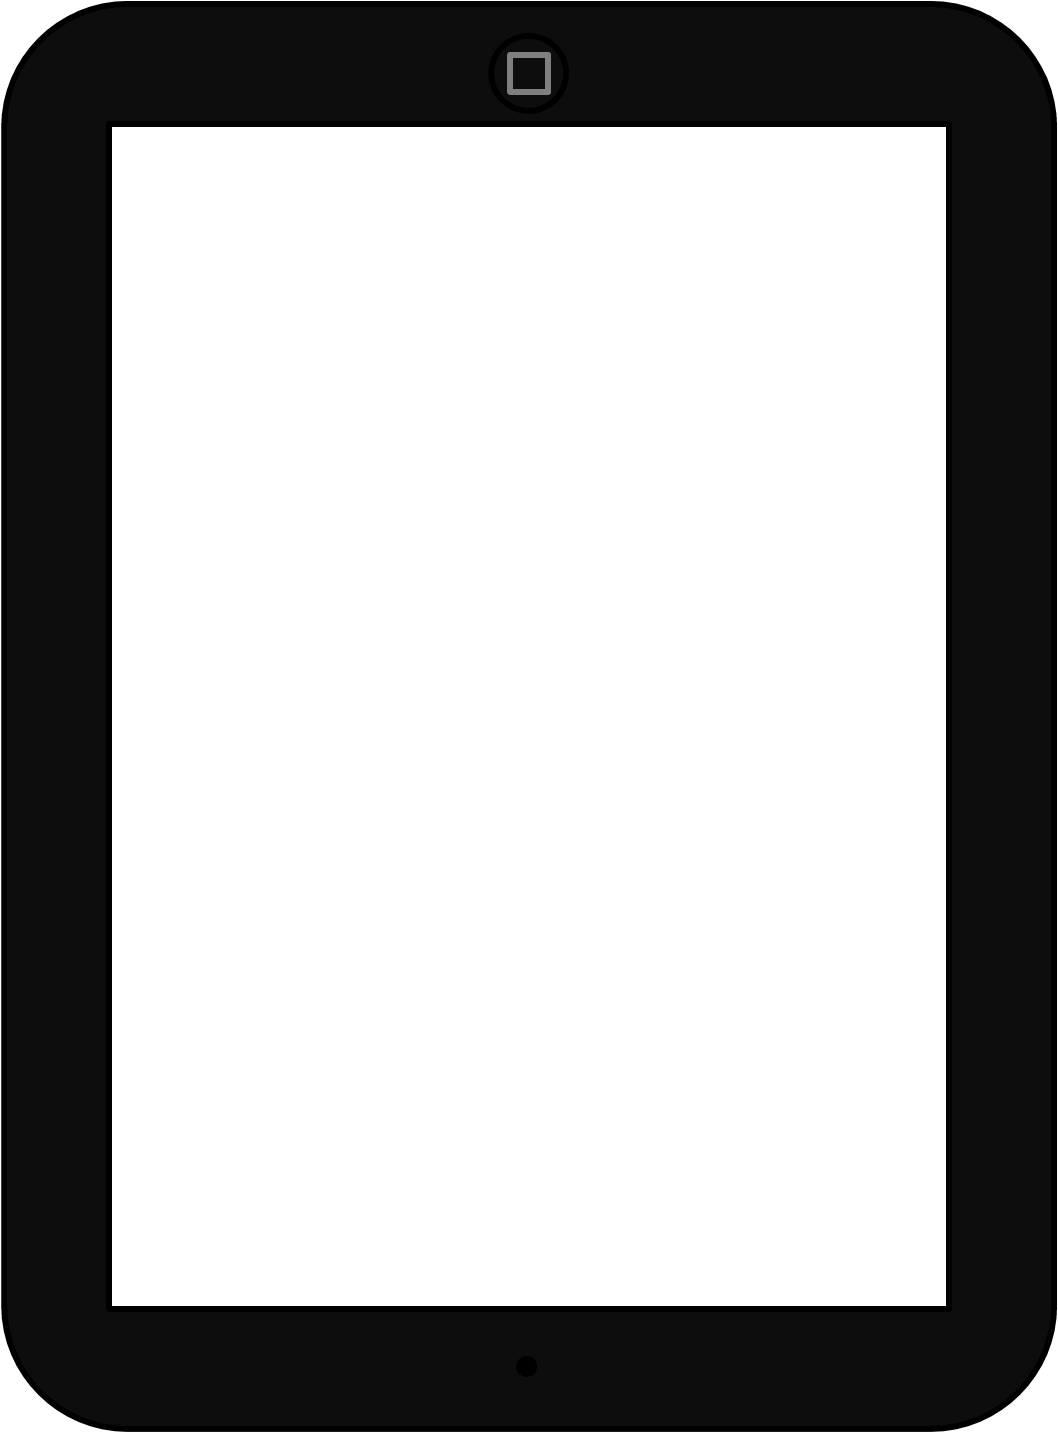 Ipad clipart transparent. Png images free download